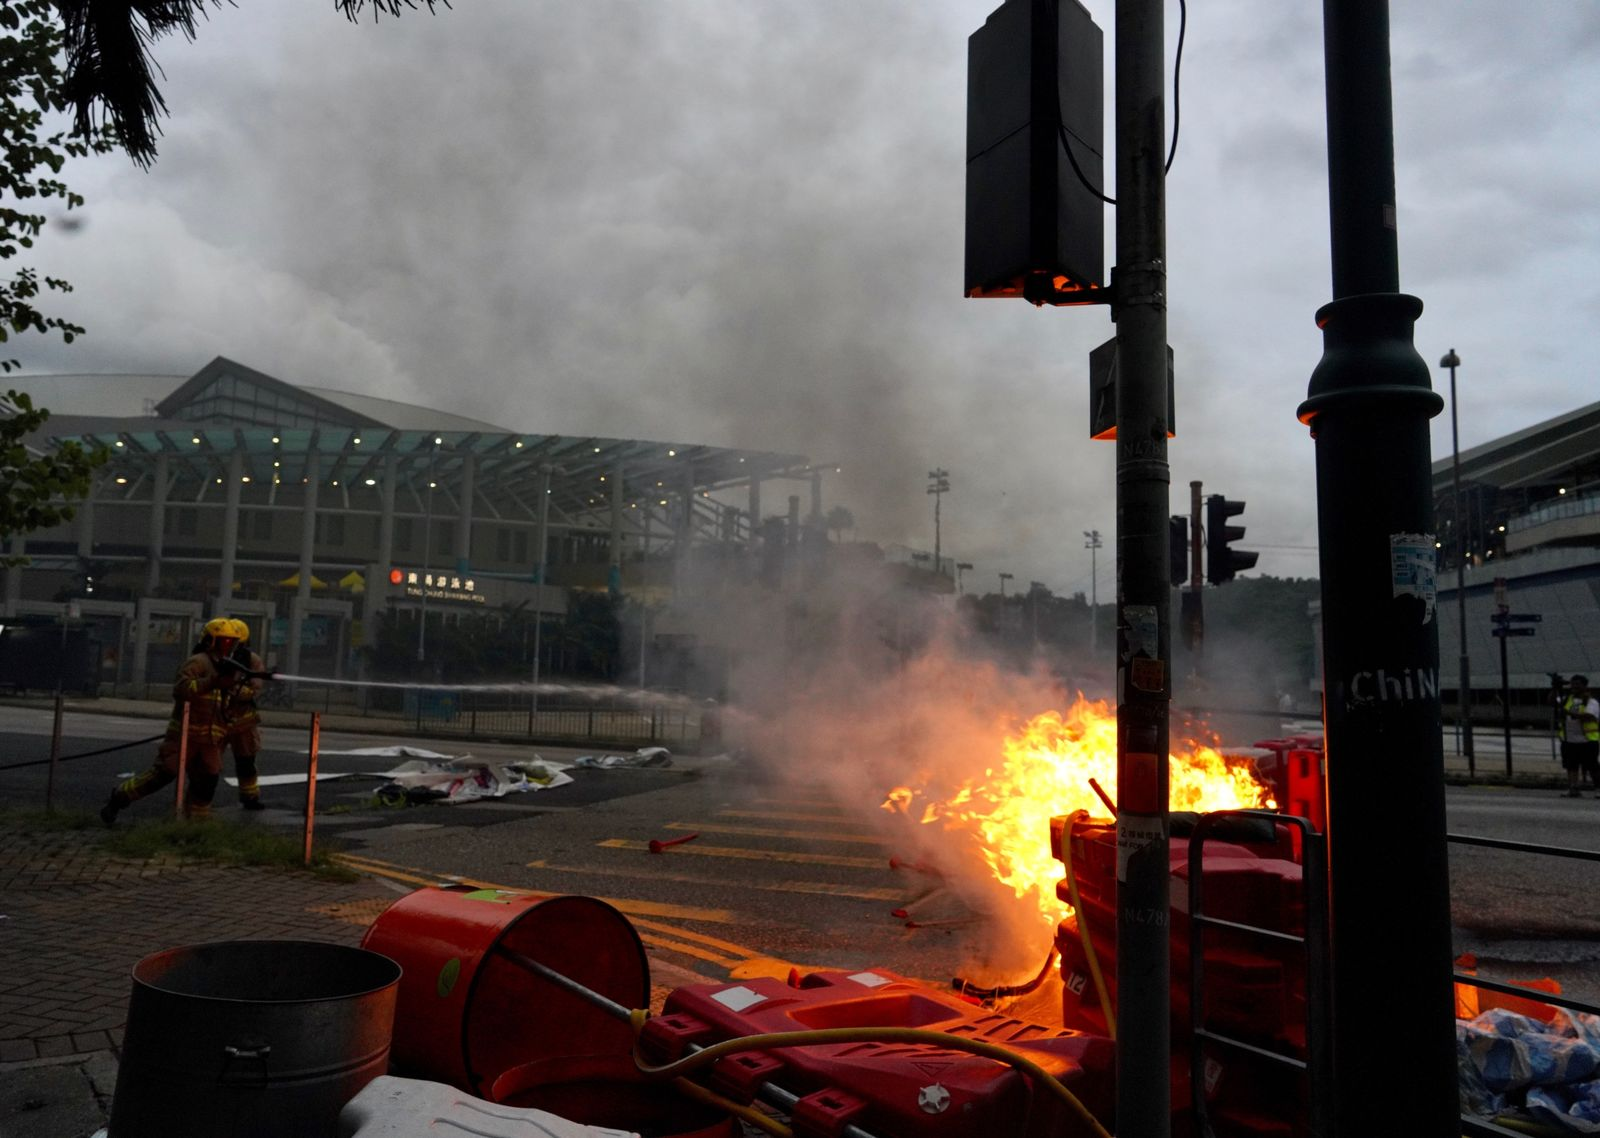 Firemen try to douse fire after protesters set fire to barricades and vandalized signages at Tung Chung near airport in Hong Kong, Sunday, Sept.1, 2019.{ } (AP Photo/Vincent Yu)